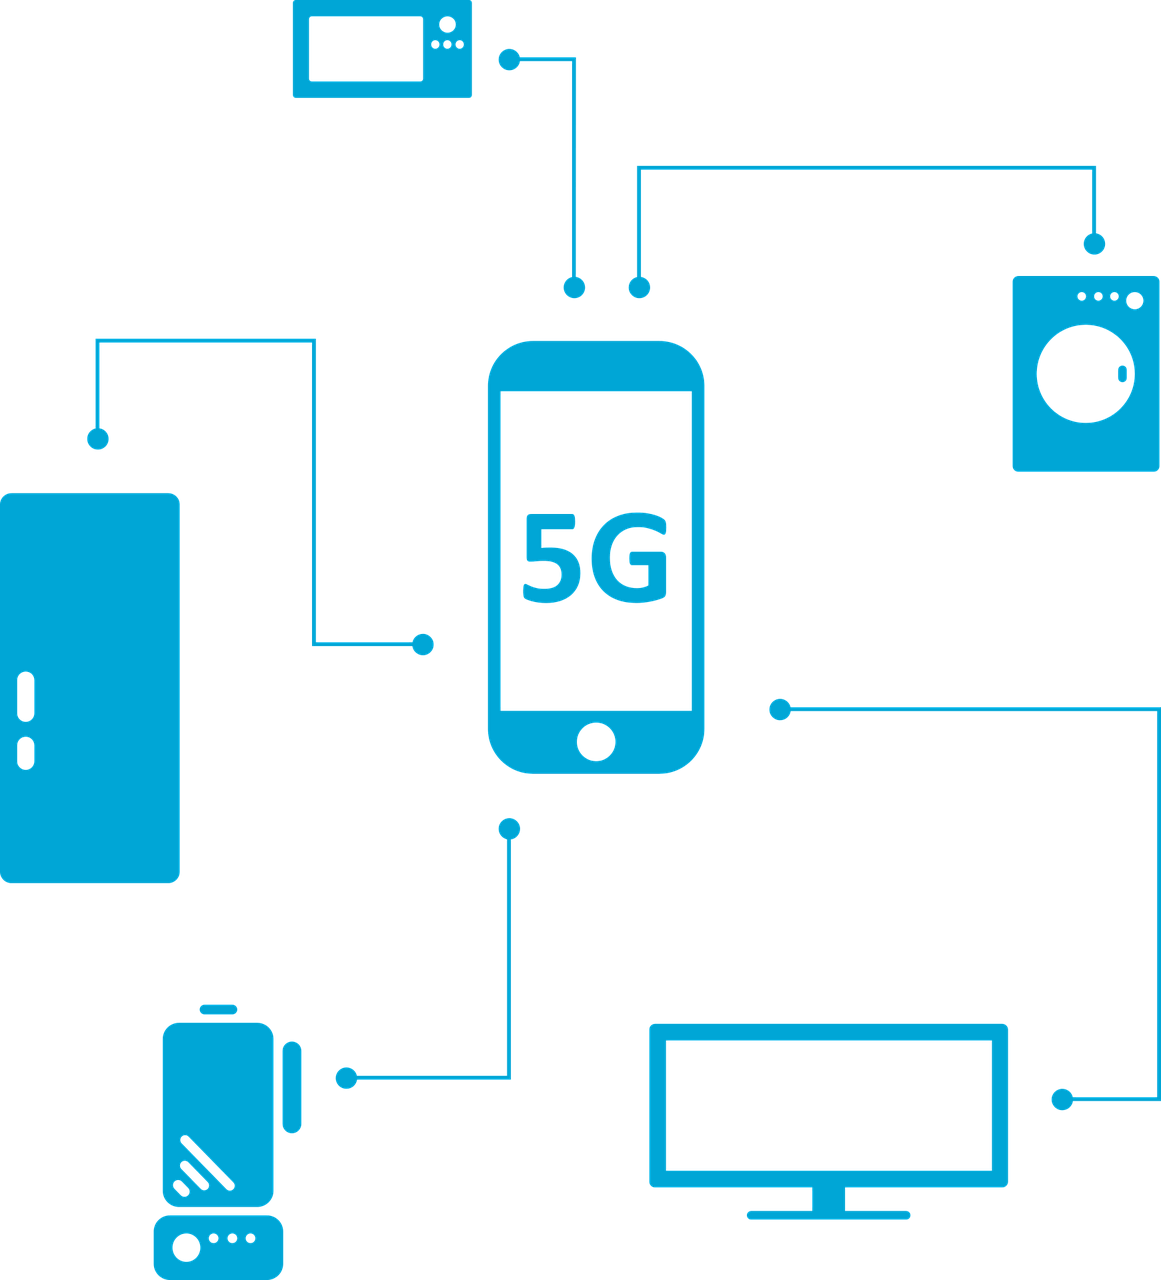 How will 5G impact different industries?